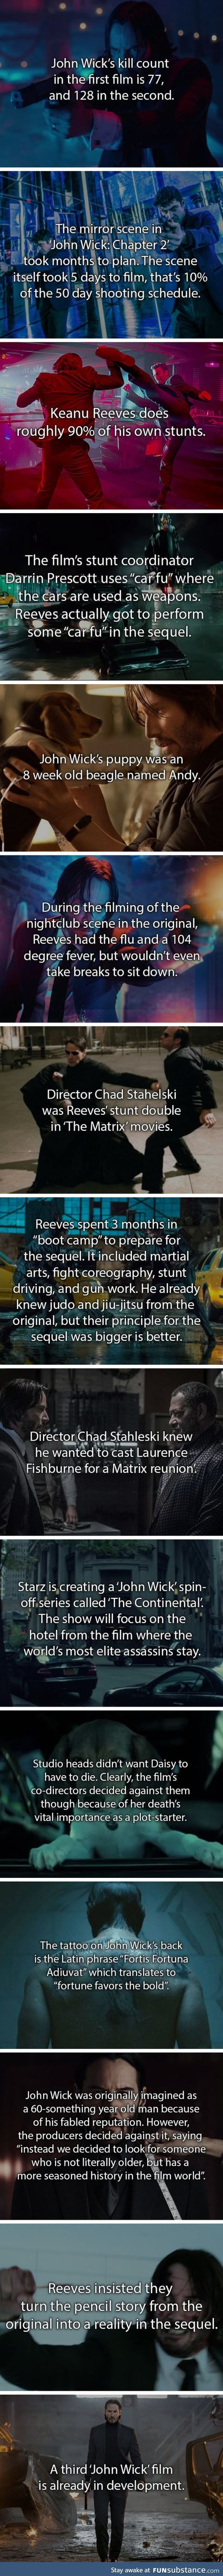 Well, the creators revealed he actually killed 84 in the first movie, and Keanu Reeves was and still is in his 50's